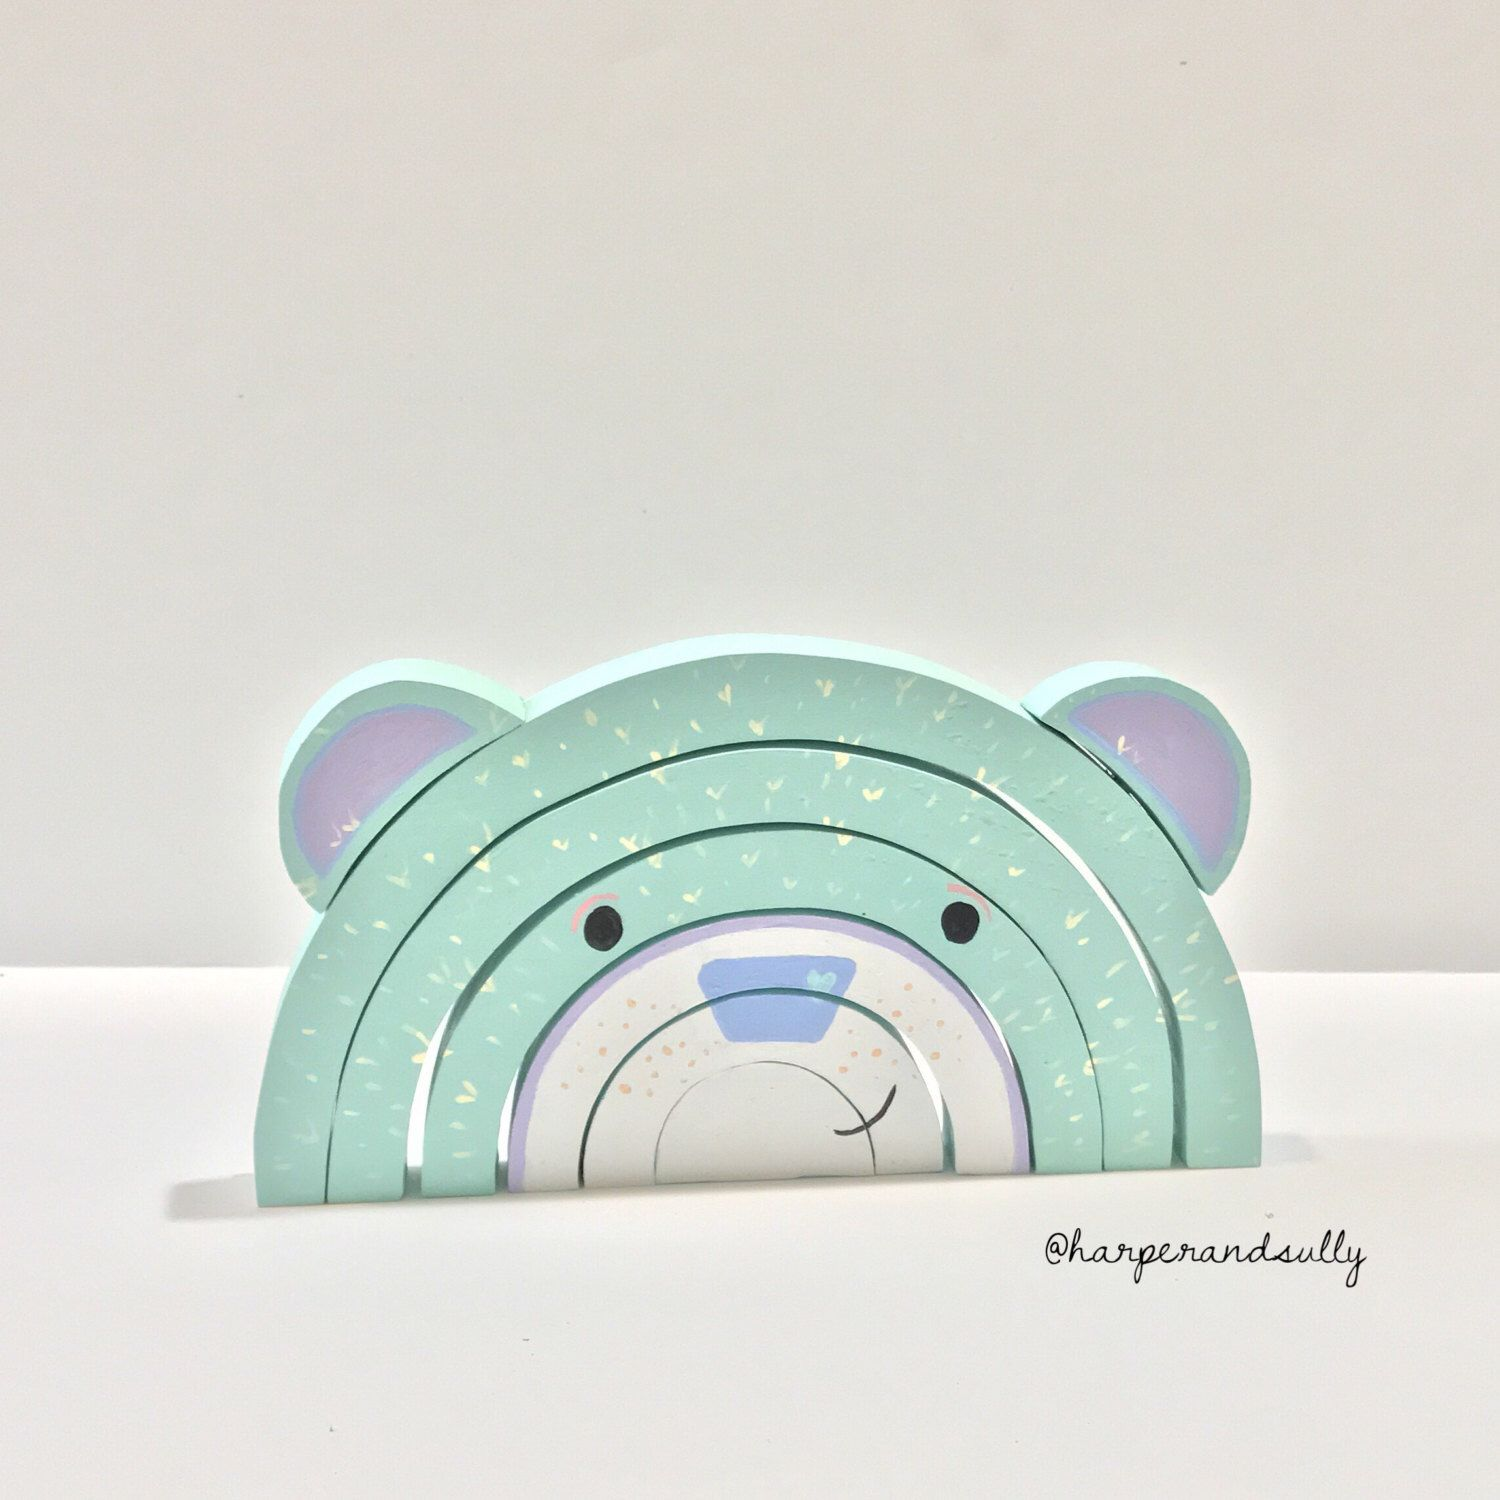 Beau the Bear wooden rainbow nesting stacker puzzle blocks handcrafted Montessori solid wood toy baby toddler gift by harperandsully on Etsy https://www.etsy.com/listing/507276443/beau-the-bear-wooden-rainbow-nesting